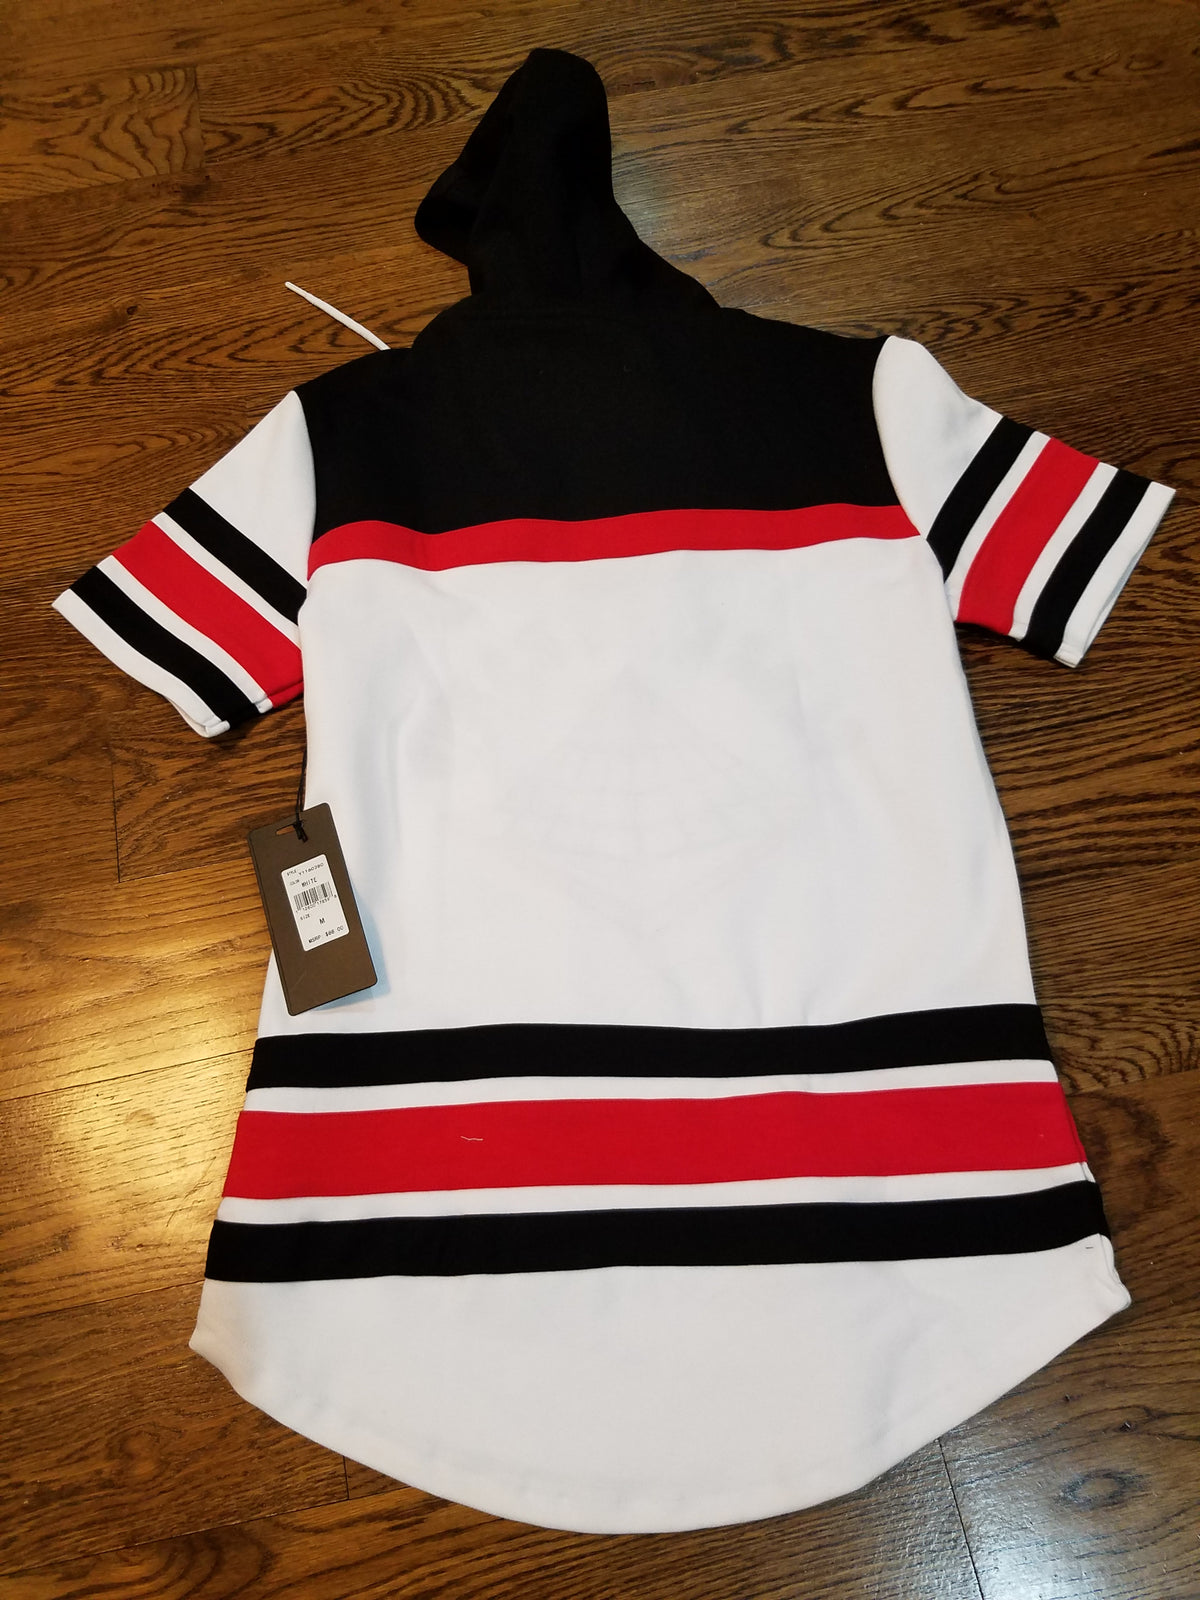 SS HOCKEY JERSEY Y1160280 WHITE - cosign1975